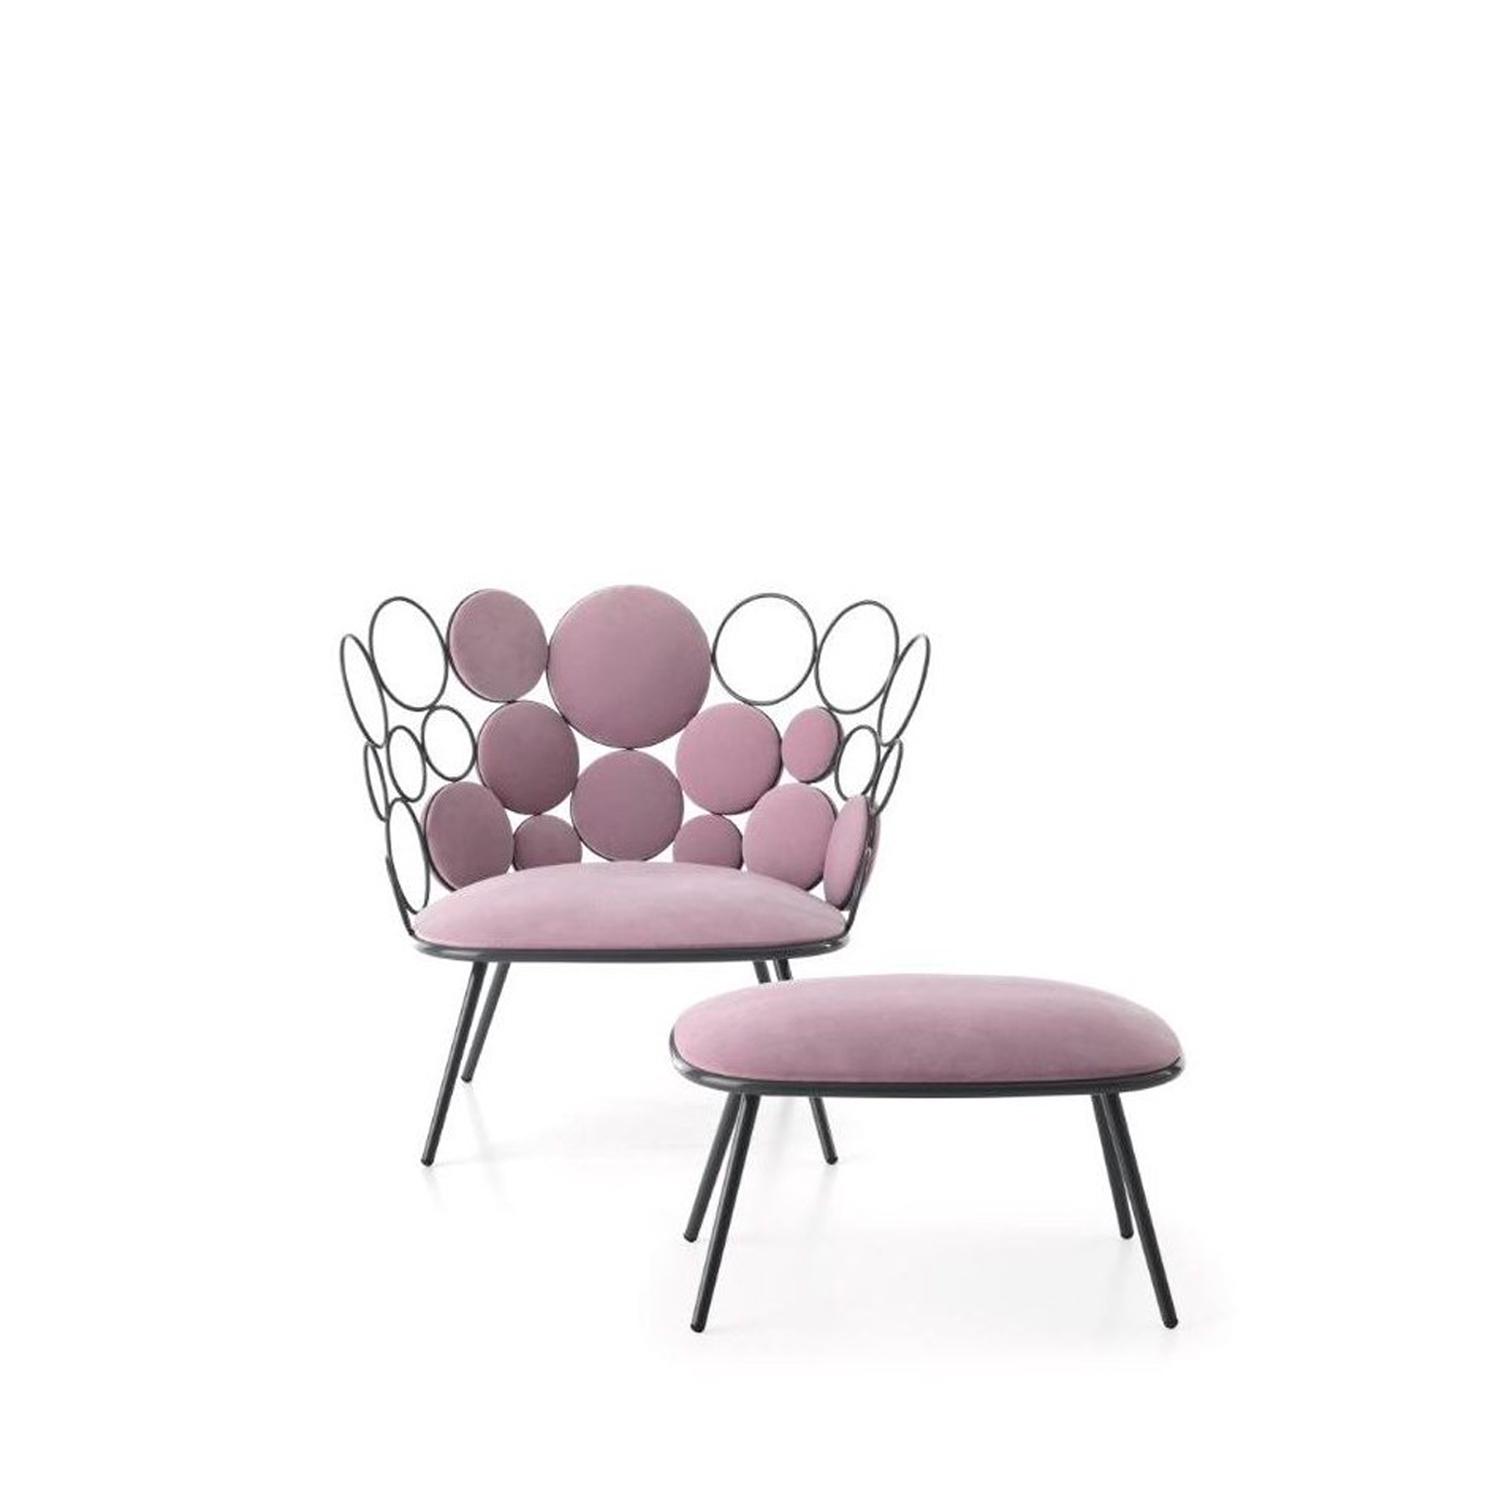 Grace Garden Easy Chair - Grace is a fabric and iron easy garden chair, part of homonymous collection.  Our new outdoor collection by Paolo Grasselli is an irresistibly dainty decorative range.  Geometric patterns materialise and metal lines trace circles through the air in an artistic élan that is much more deliberate than first seems.  Metal rings of differing sizes breathe life into a seating collection and accessories where practicality and beauty become one. Empty circles clasp cushioned spheres in a cluster of coloured and transparent bubbles, settling down magnificently into a tub chair, a loveseat, a low table and a pouf. Nascent forms spring up where the concept of a chair has been torn apart and made whole again; yet this time, the distinction between space and matter and object and surrounds has become blurred. Depending on the arrangement of the rings and the positioning of the cushions, different harmonious patterns can be created - the end result will always be strikingly decorative and surprisingly comfortable.    Materials :  Coated outdoor structure with spheres in ø 8 mm solid iron rod, ø 18 mm tubular base, available either in white or grey.  Padded spheres made in Finnish spruce and a seat cushion in contoured rubber are available in a vast array of upholstery suitable for outdoors. Should the furniture be destined for indoors, the choice of upholstery fabrics includes the home collection.  | Matter of Stuff